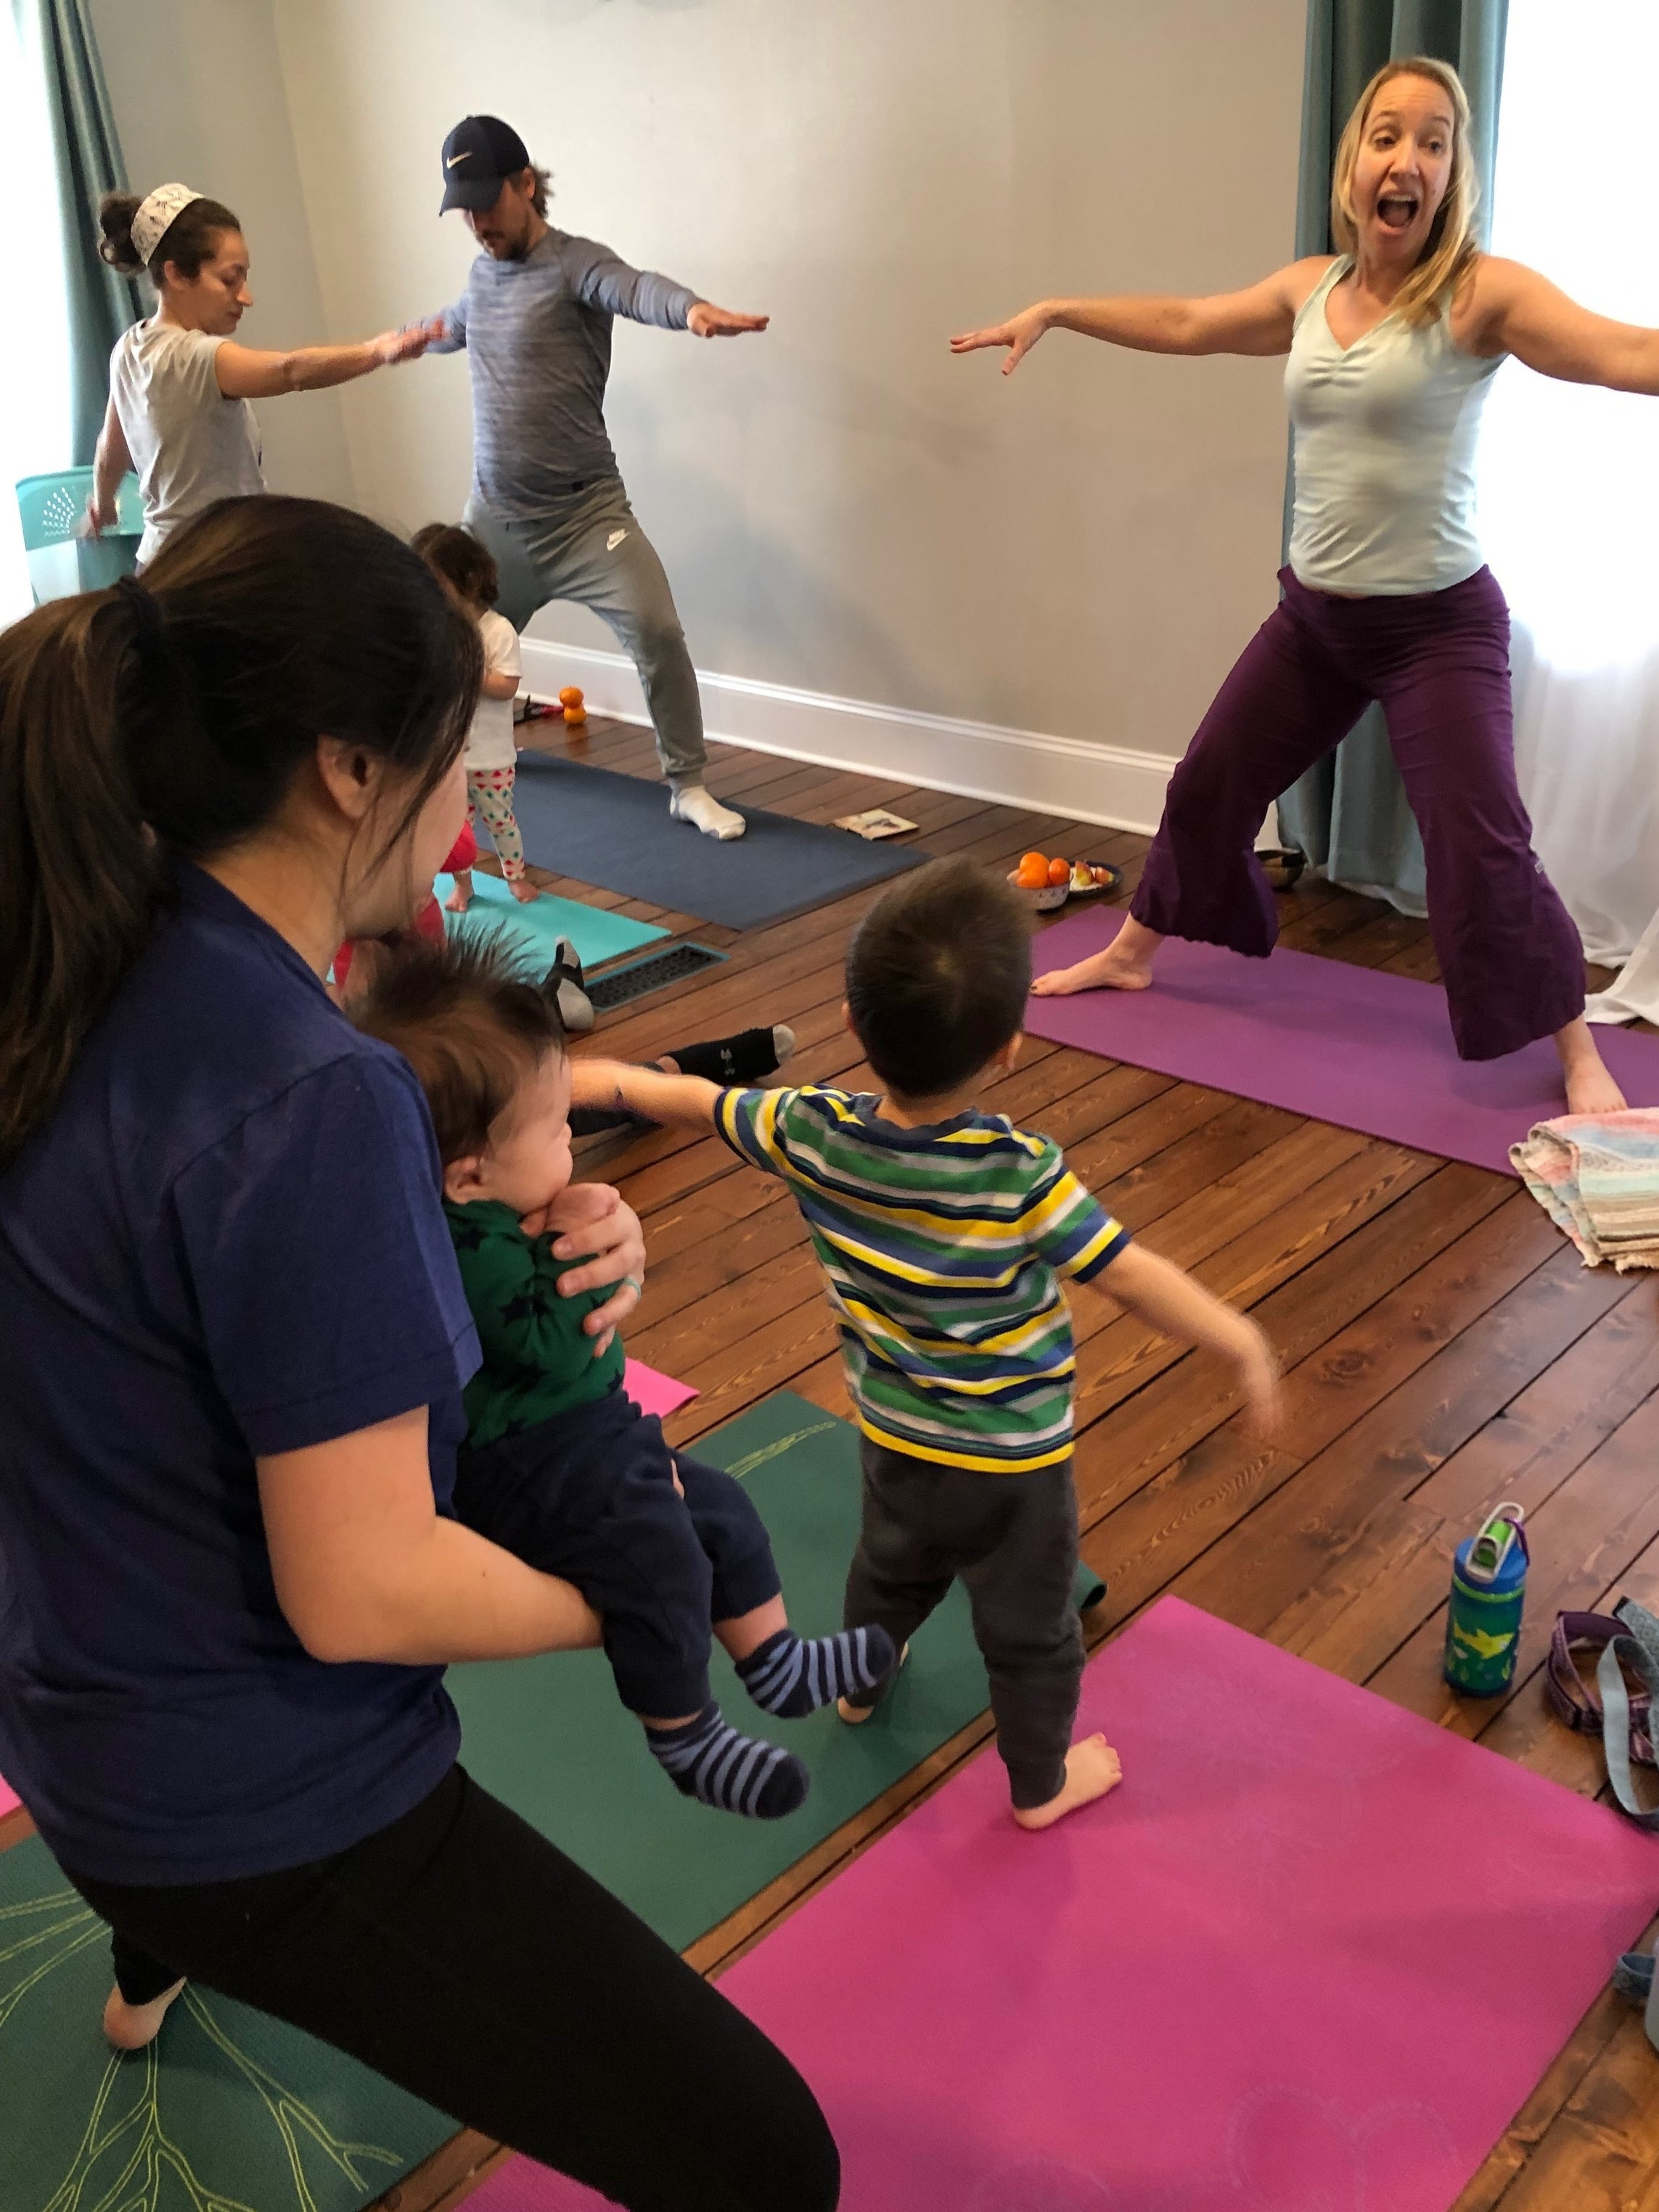 It's a wild time in Family Yoga!!